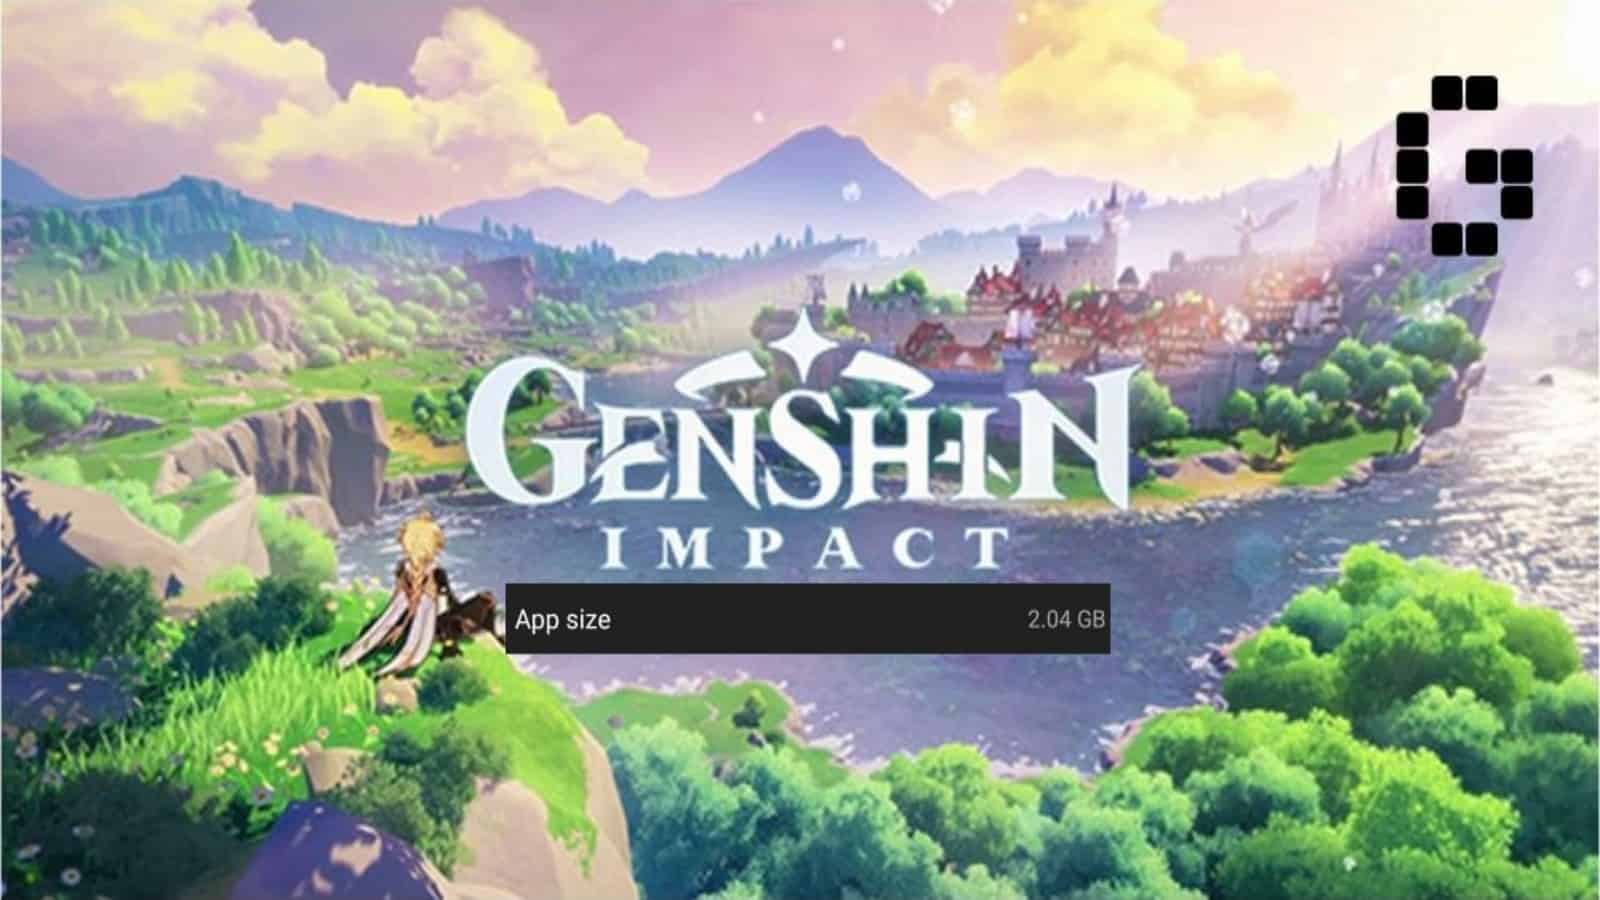 Genshin Impact Mobile Requirements and Compatible Android Devices